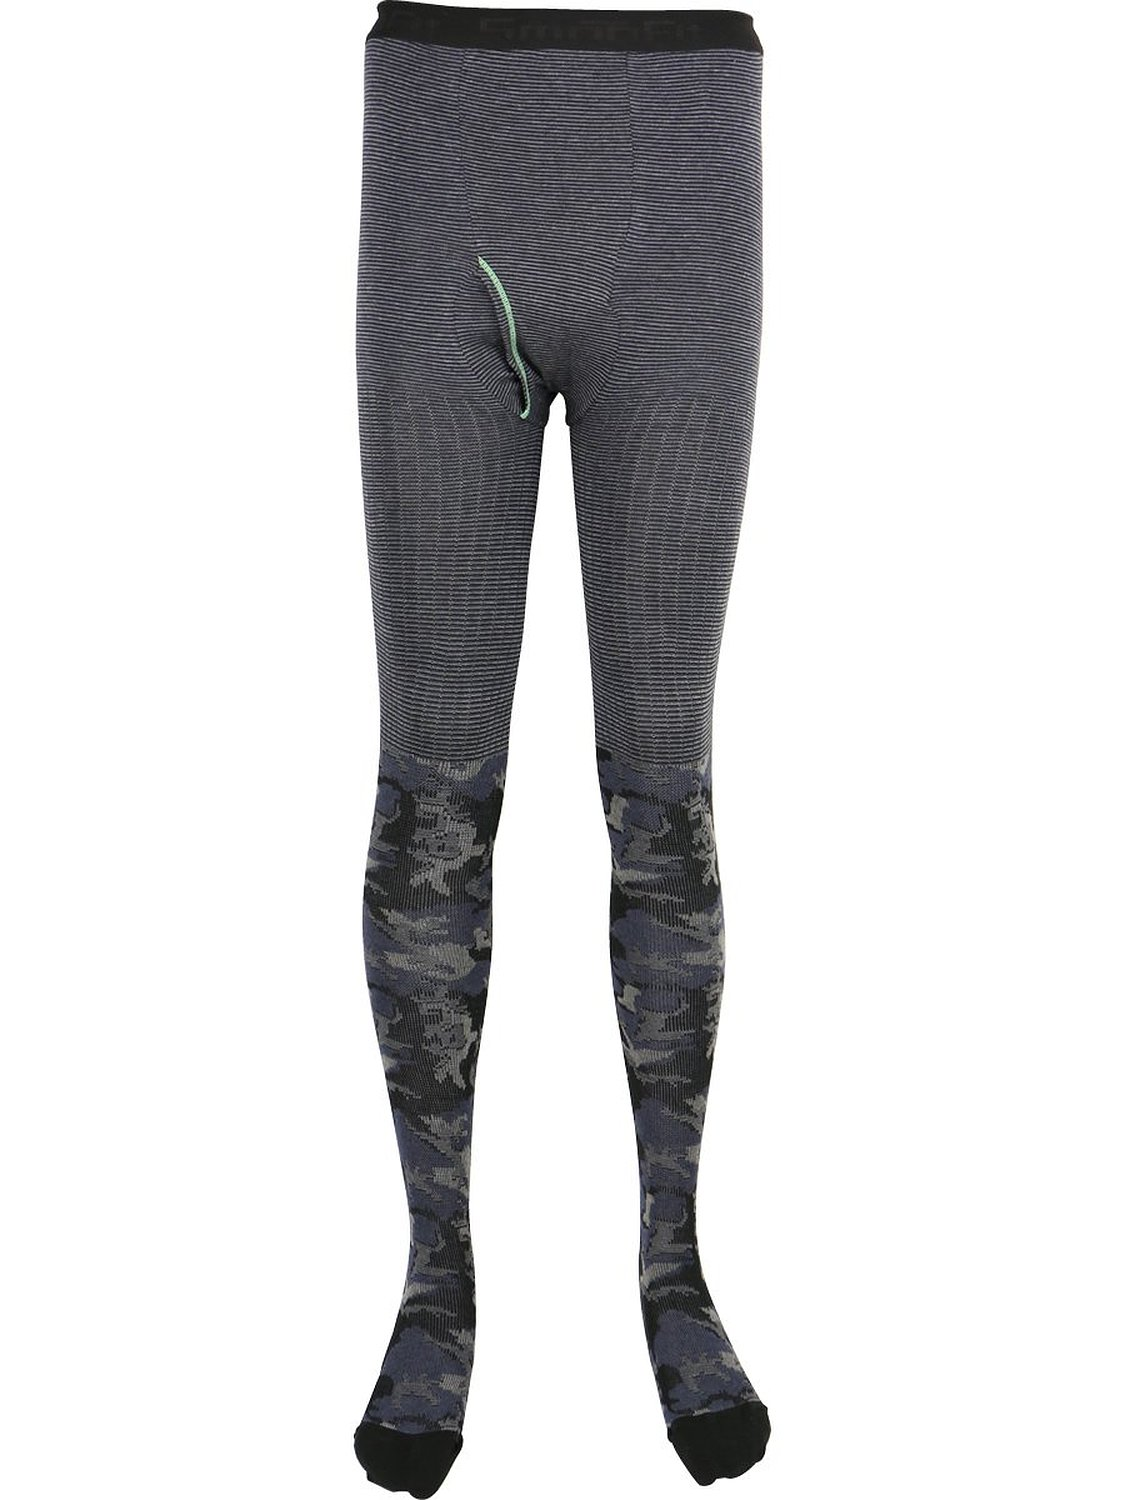 N-platz Mens Smoofit 150 Denier Neps Texture Knit Footed Thermal Tights